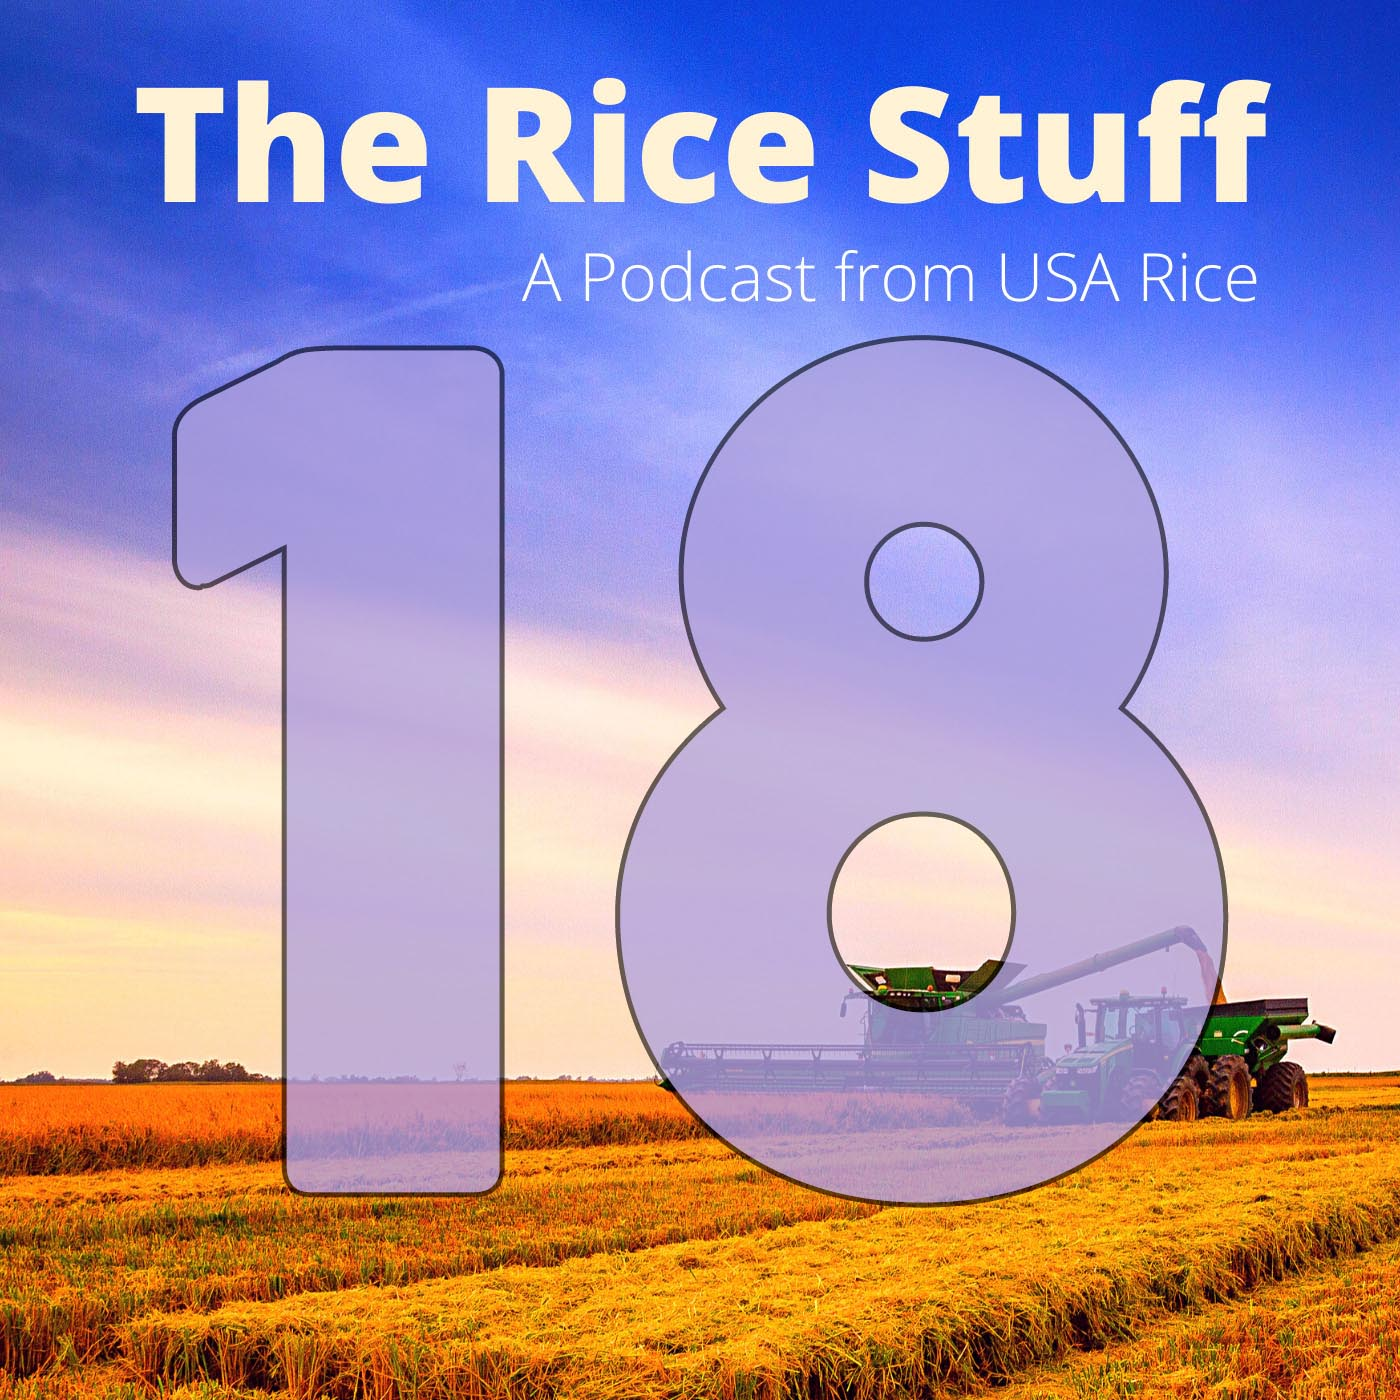 COMM-The-Rice-Stuff-Tile-Final-Ep-18-210323